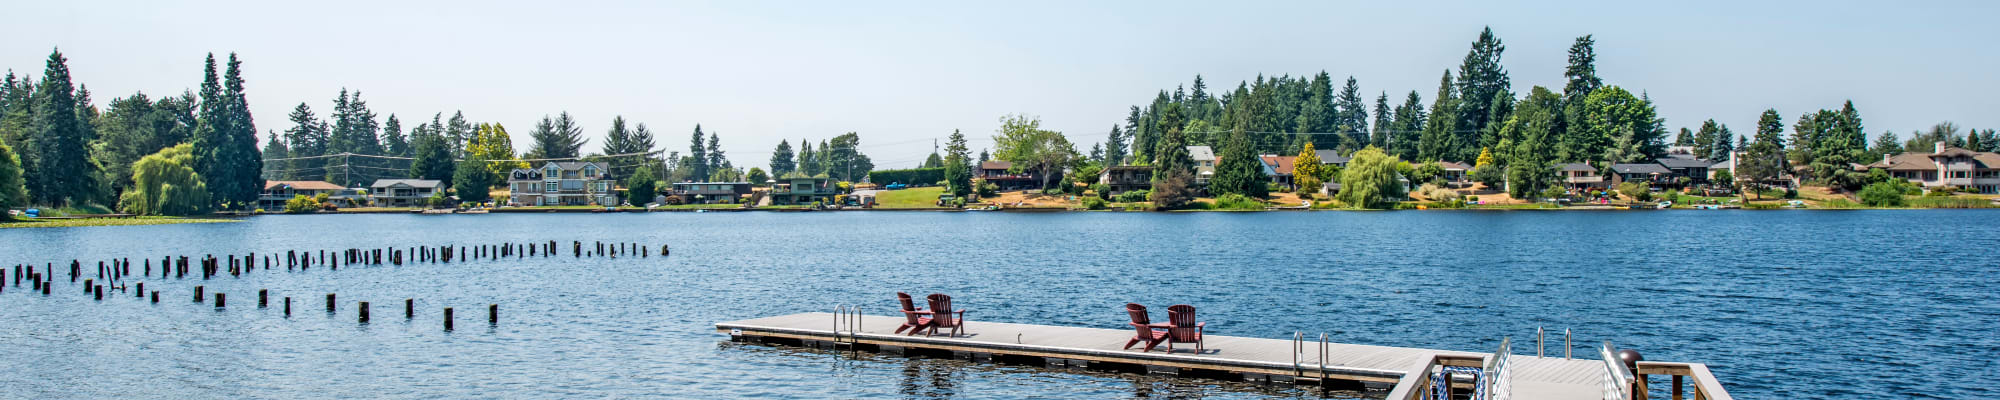 Residents portal for Surprise Lake Village in Milton, Washington